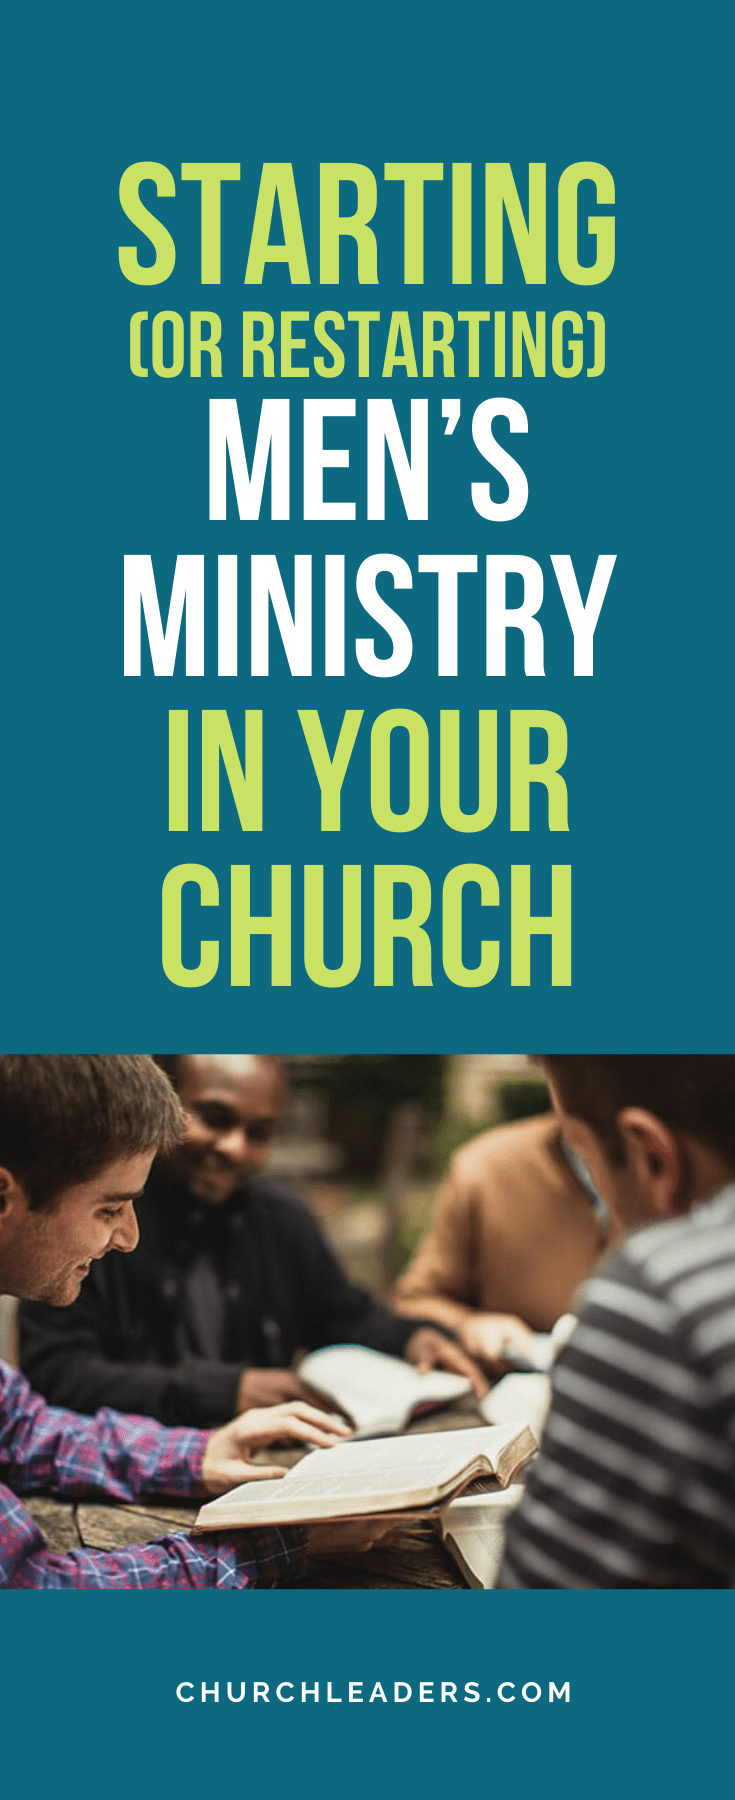 Starting (or Restarting) Men's Ministry In Your Church in